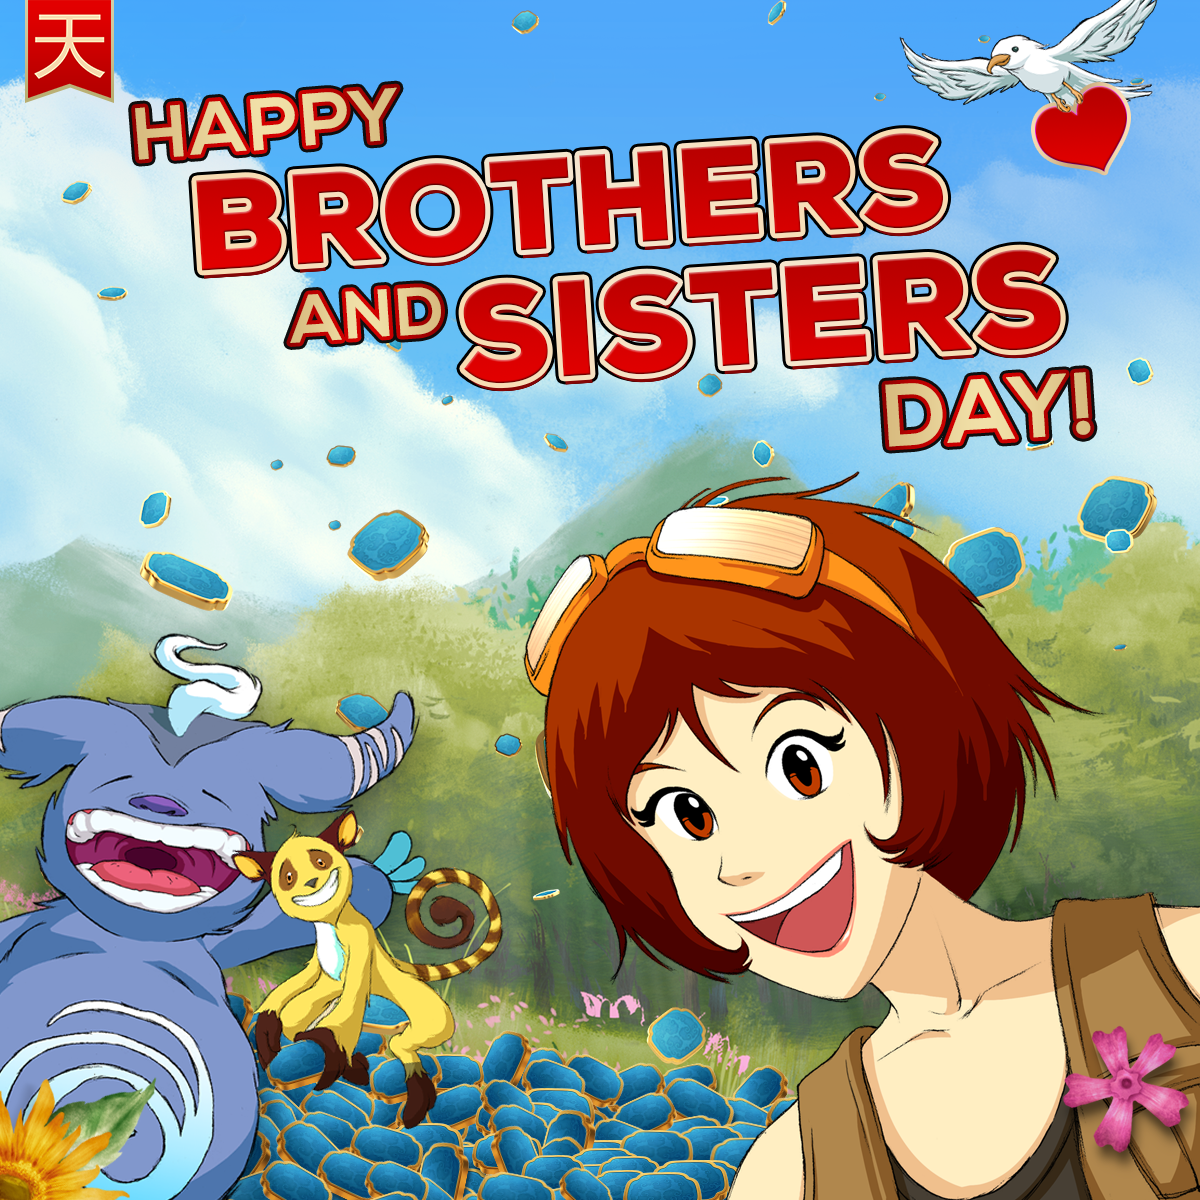 Happy Brothers And Sisters Day!